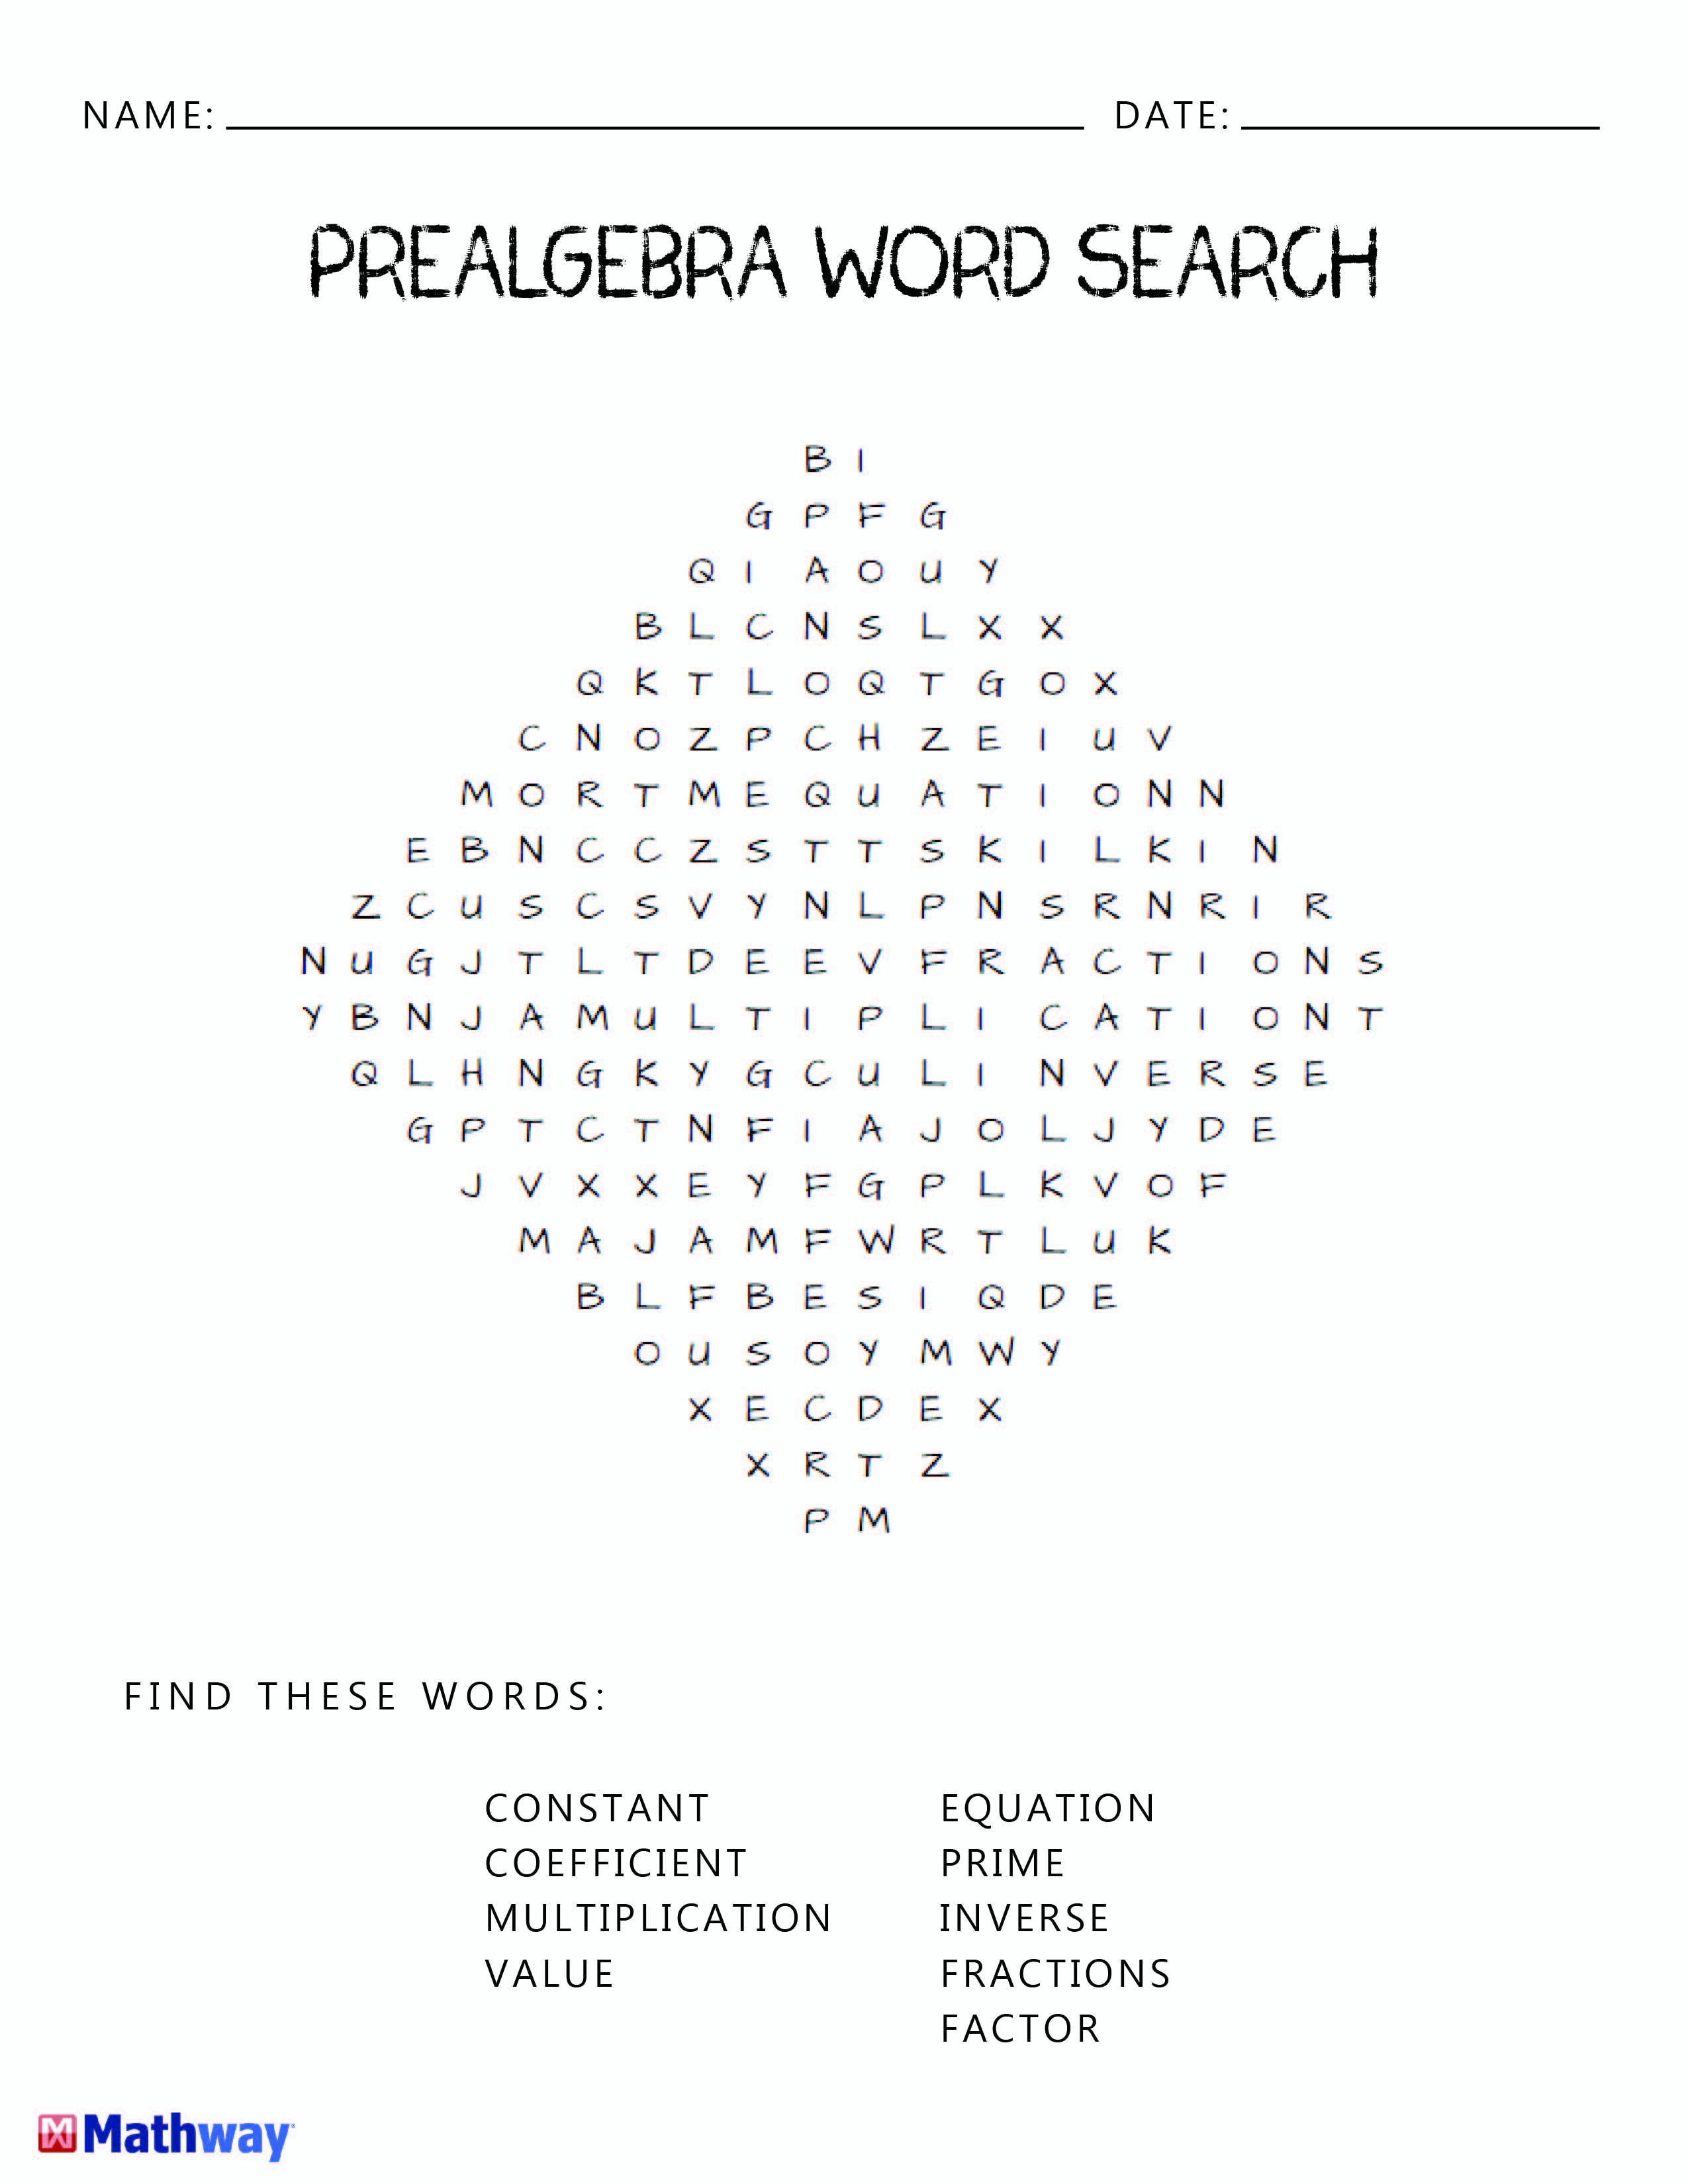 Love Word Search Puzzles? Follow Our Board, Print Out Your Favorites - Print Out Puzzle Games